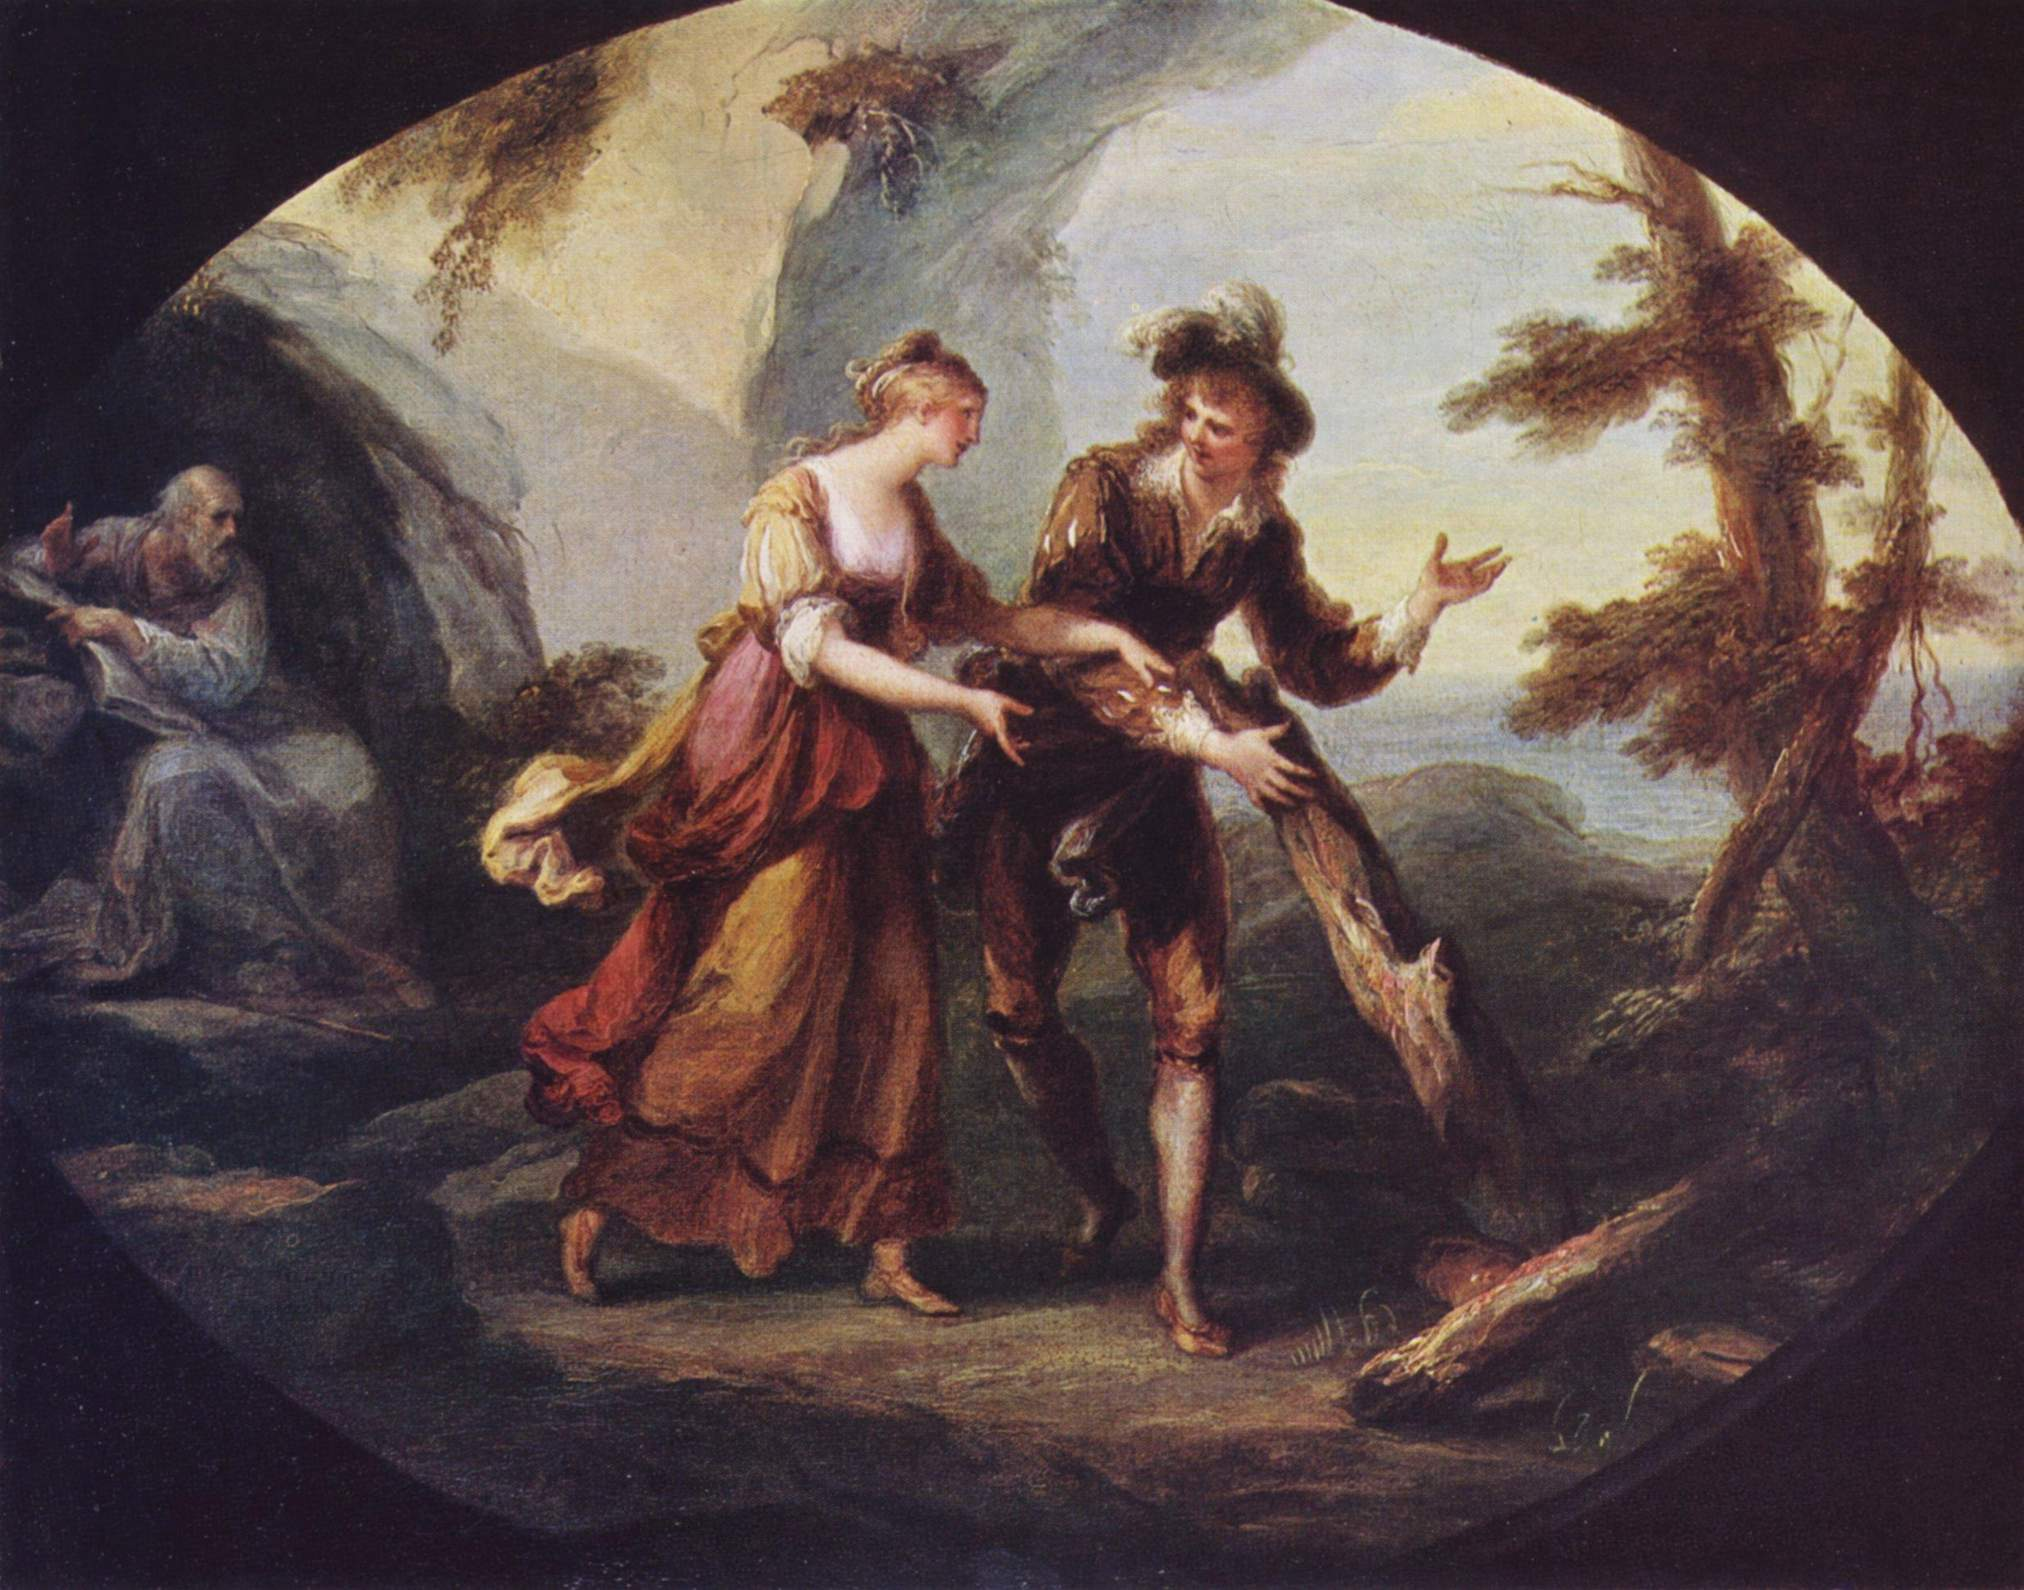 relevance of shakespeare's plays to the